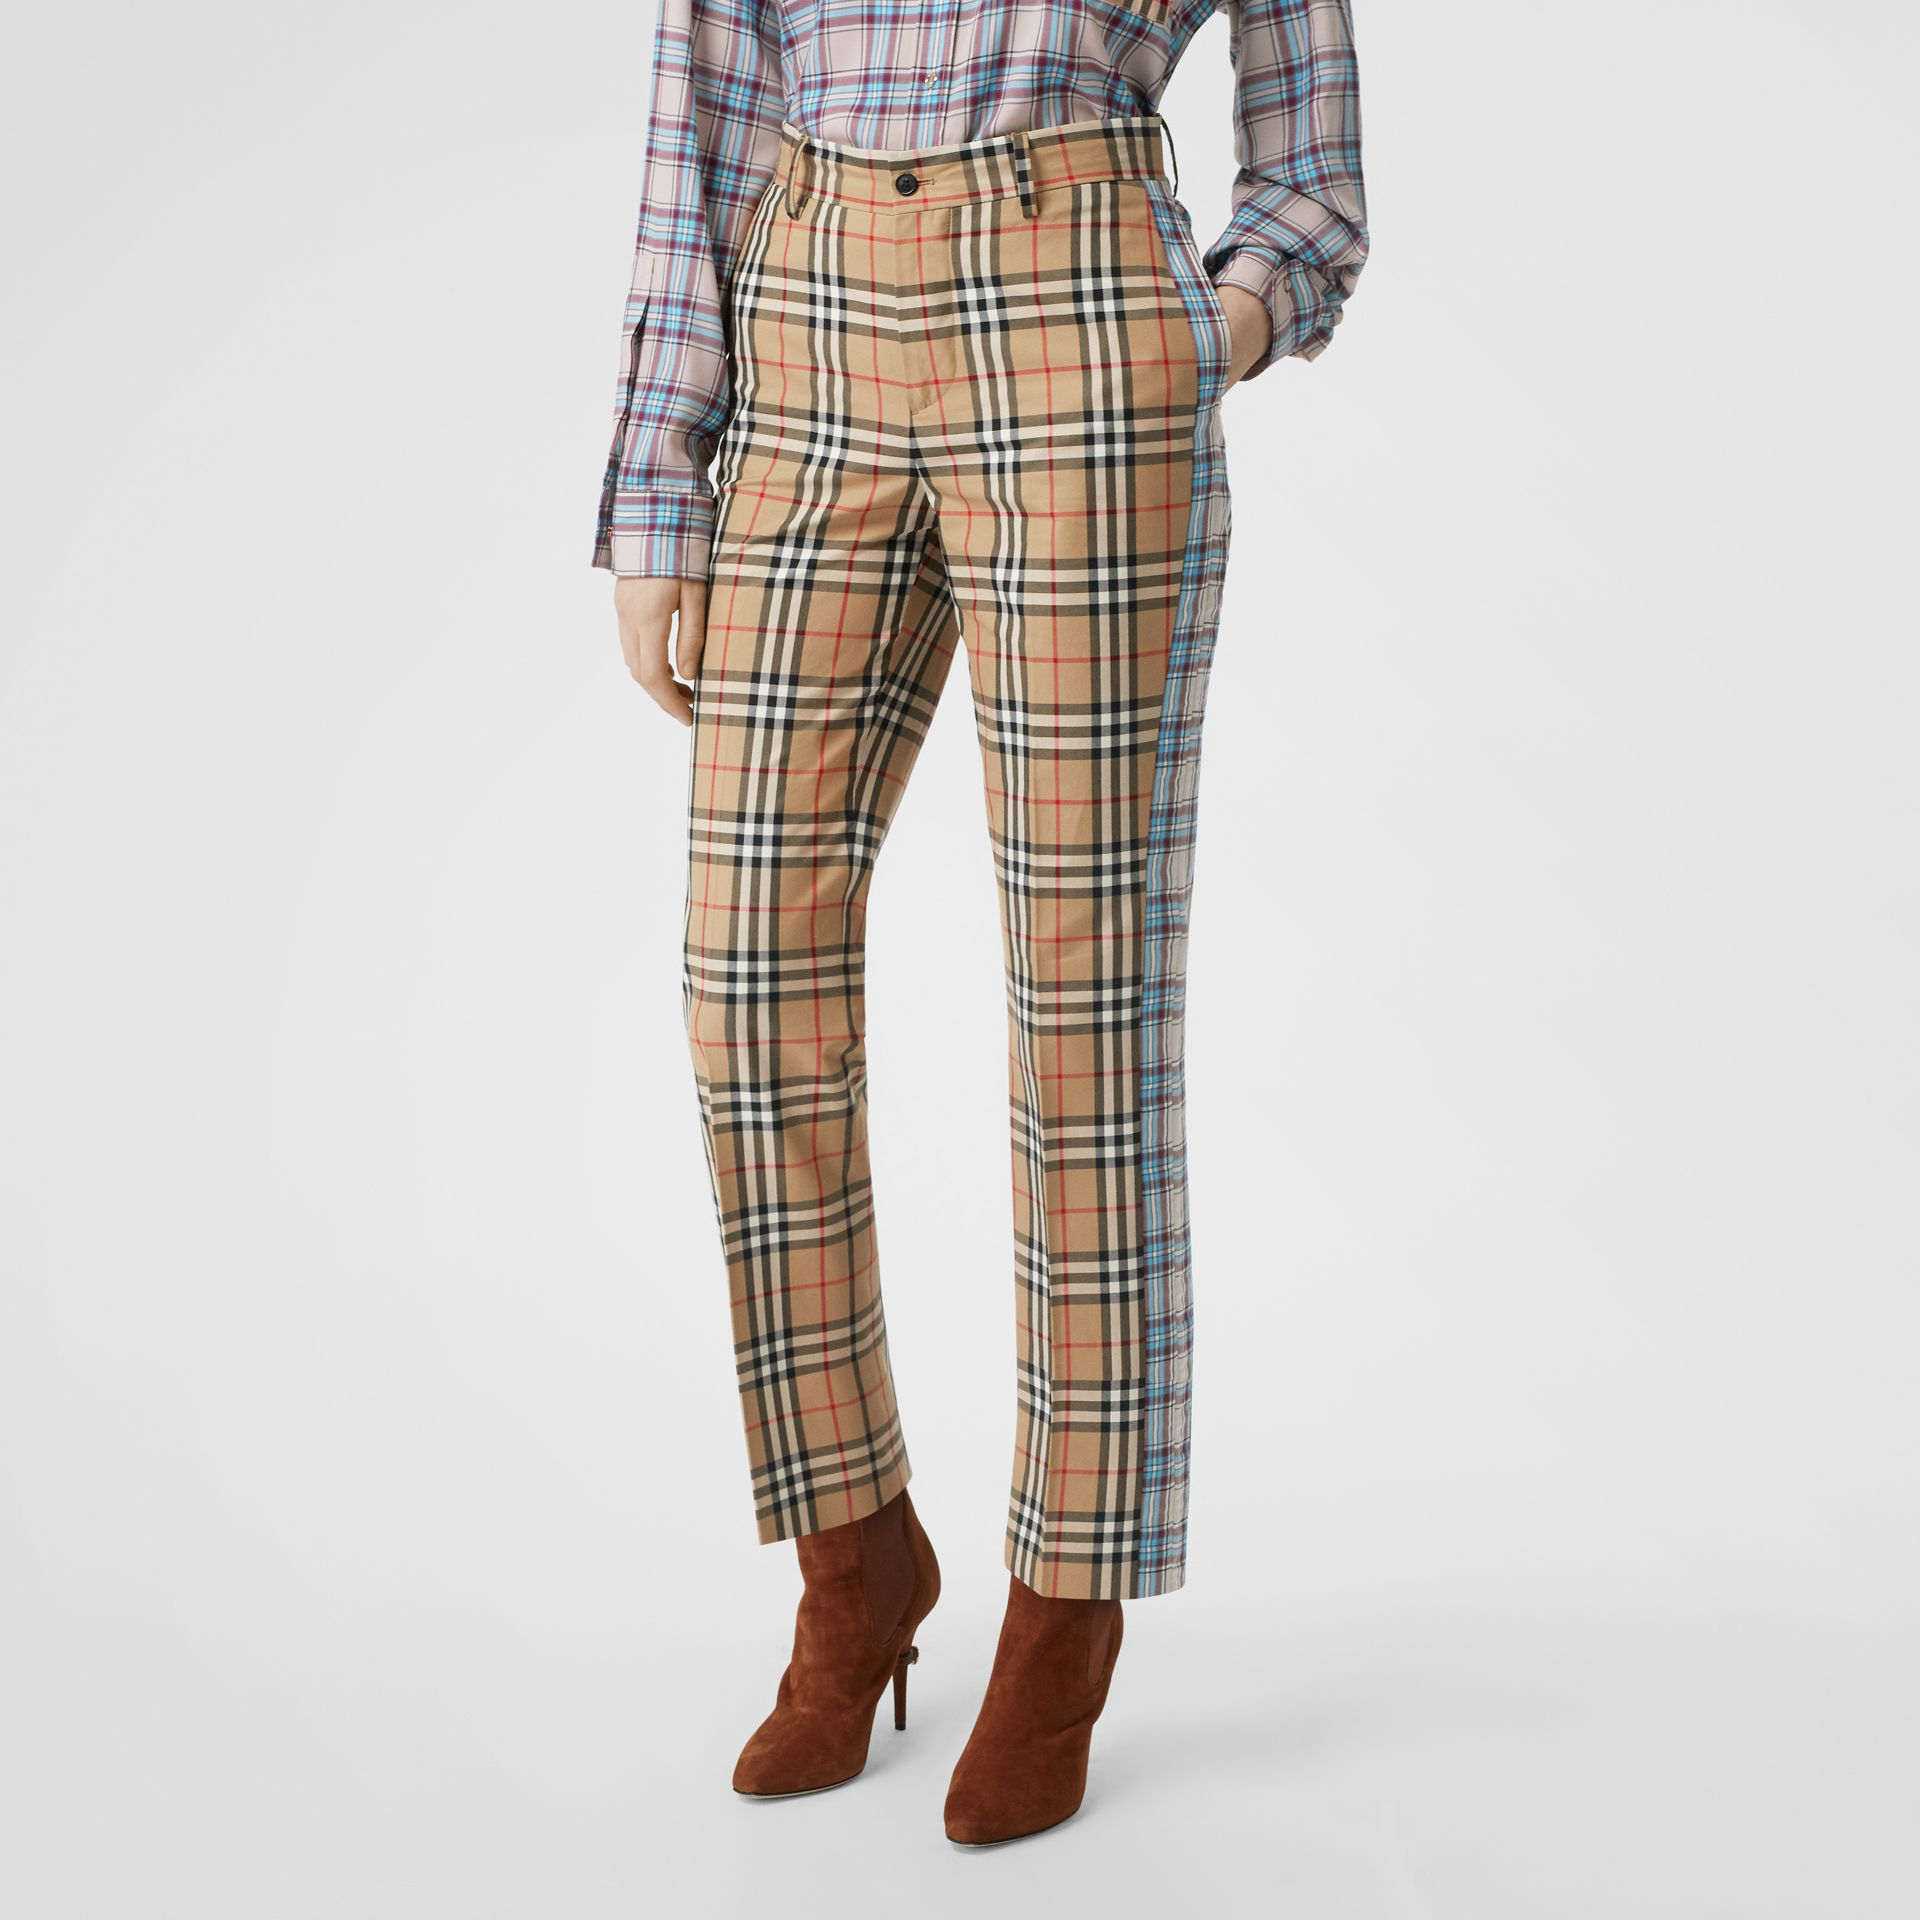 Pantalon droit en coton check (Beige D'archive) - Femme | Burberry - photo de la galerie 4